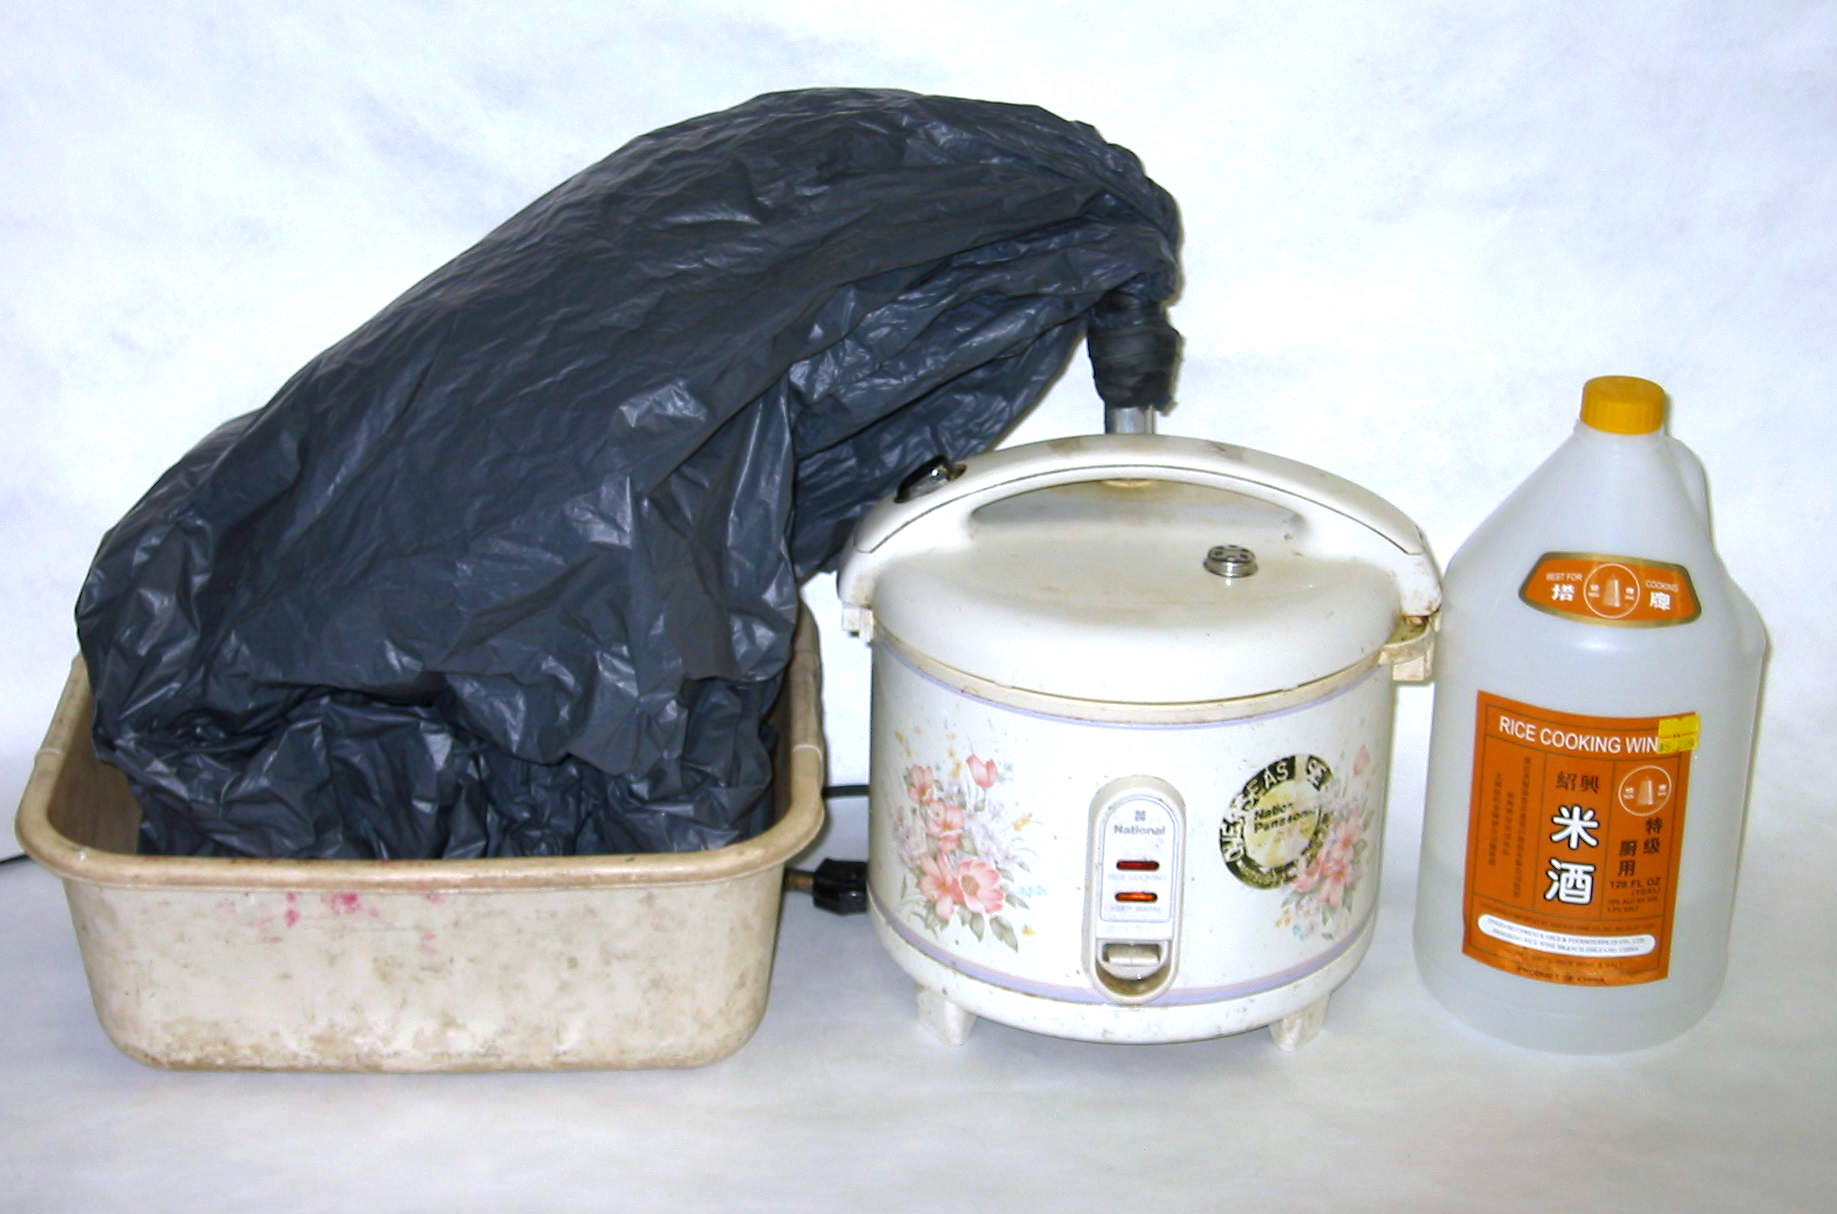 Garbage Bag + Rice Cooker = Alcohol Still